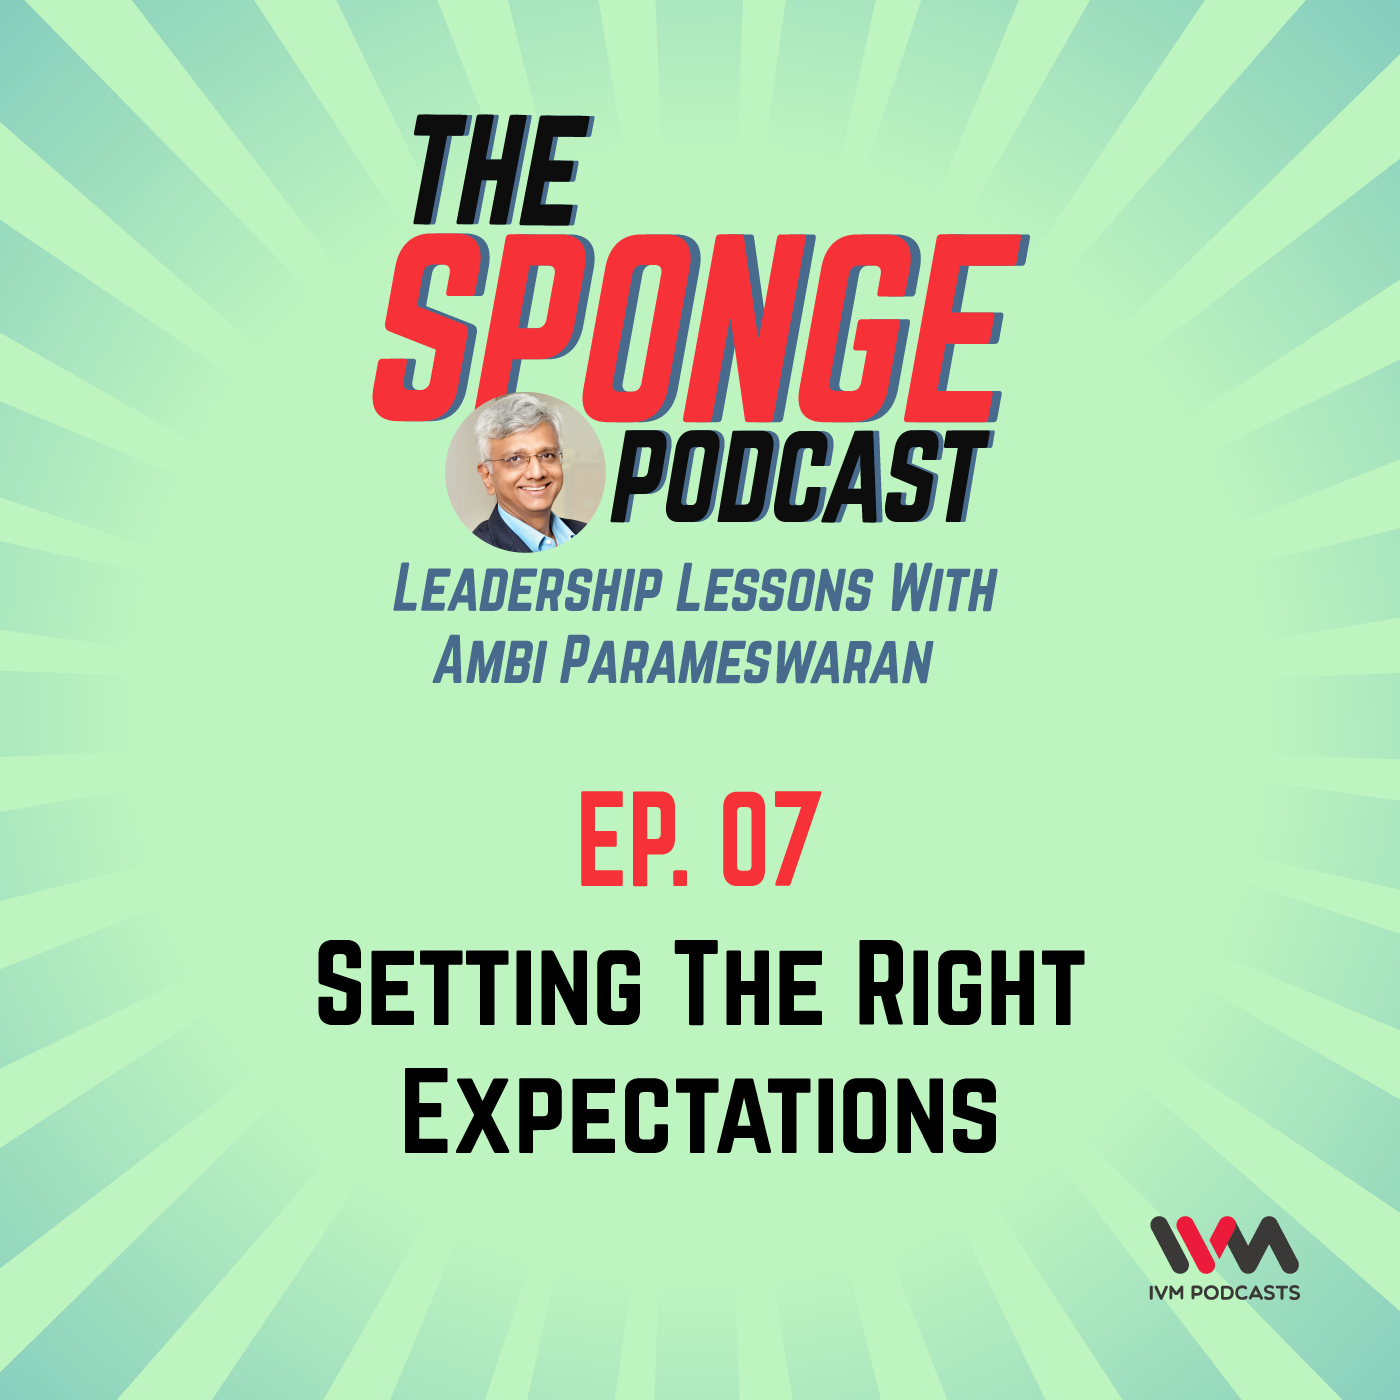 Ep. 07: Setting The Right Expectations